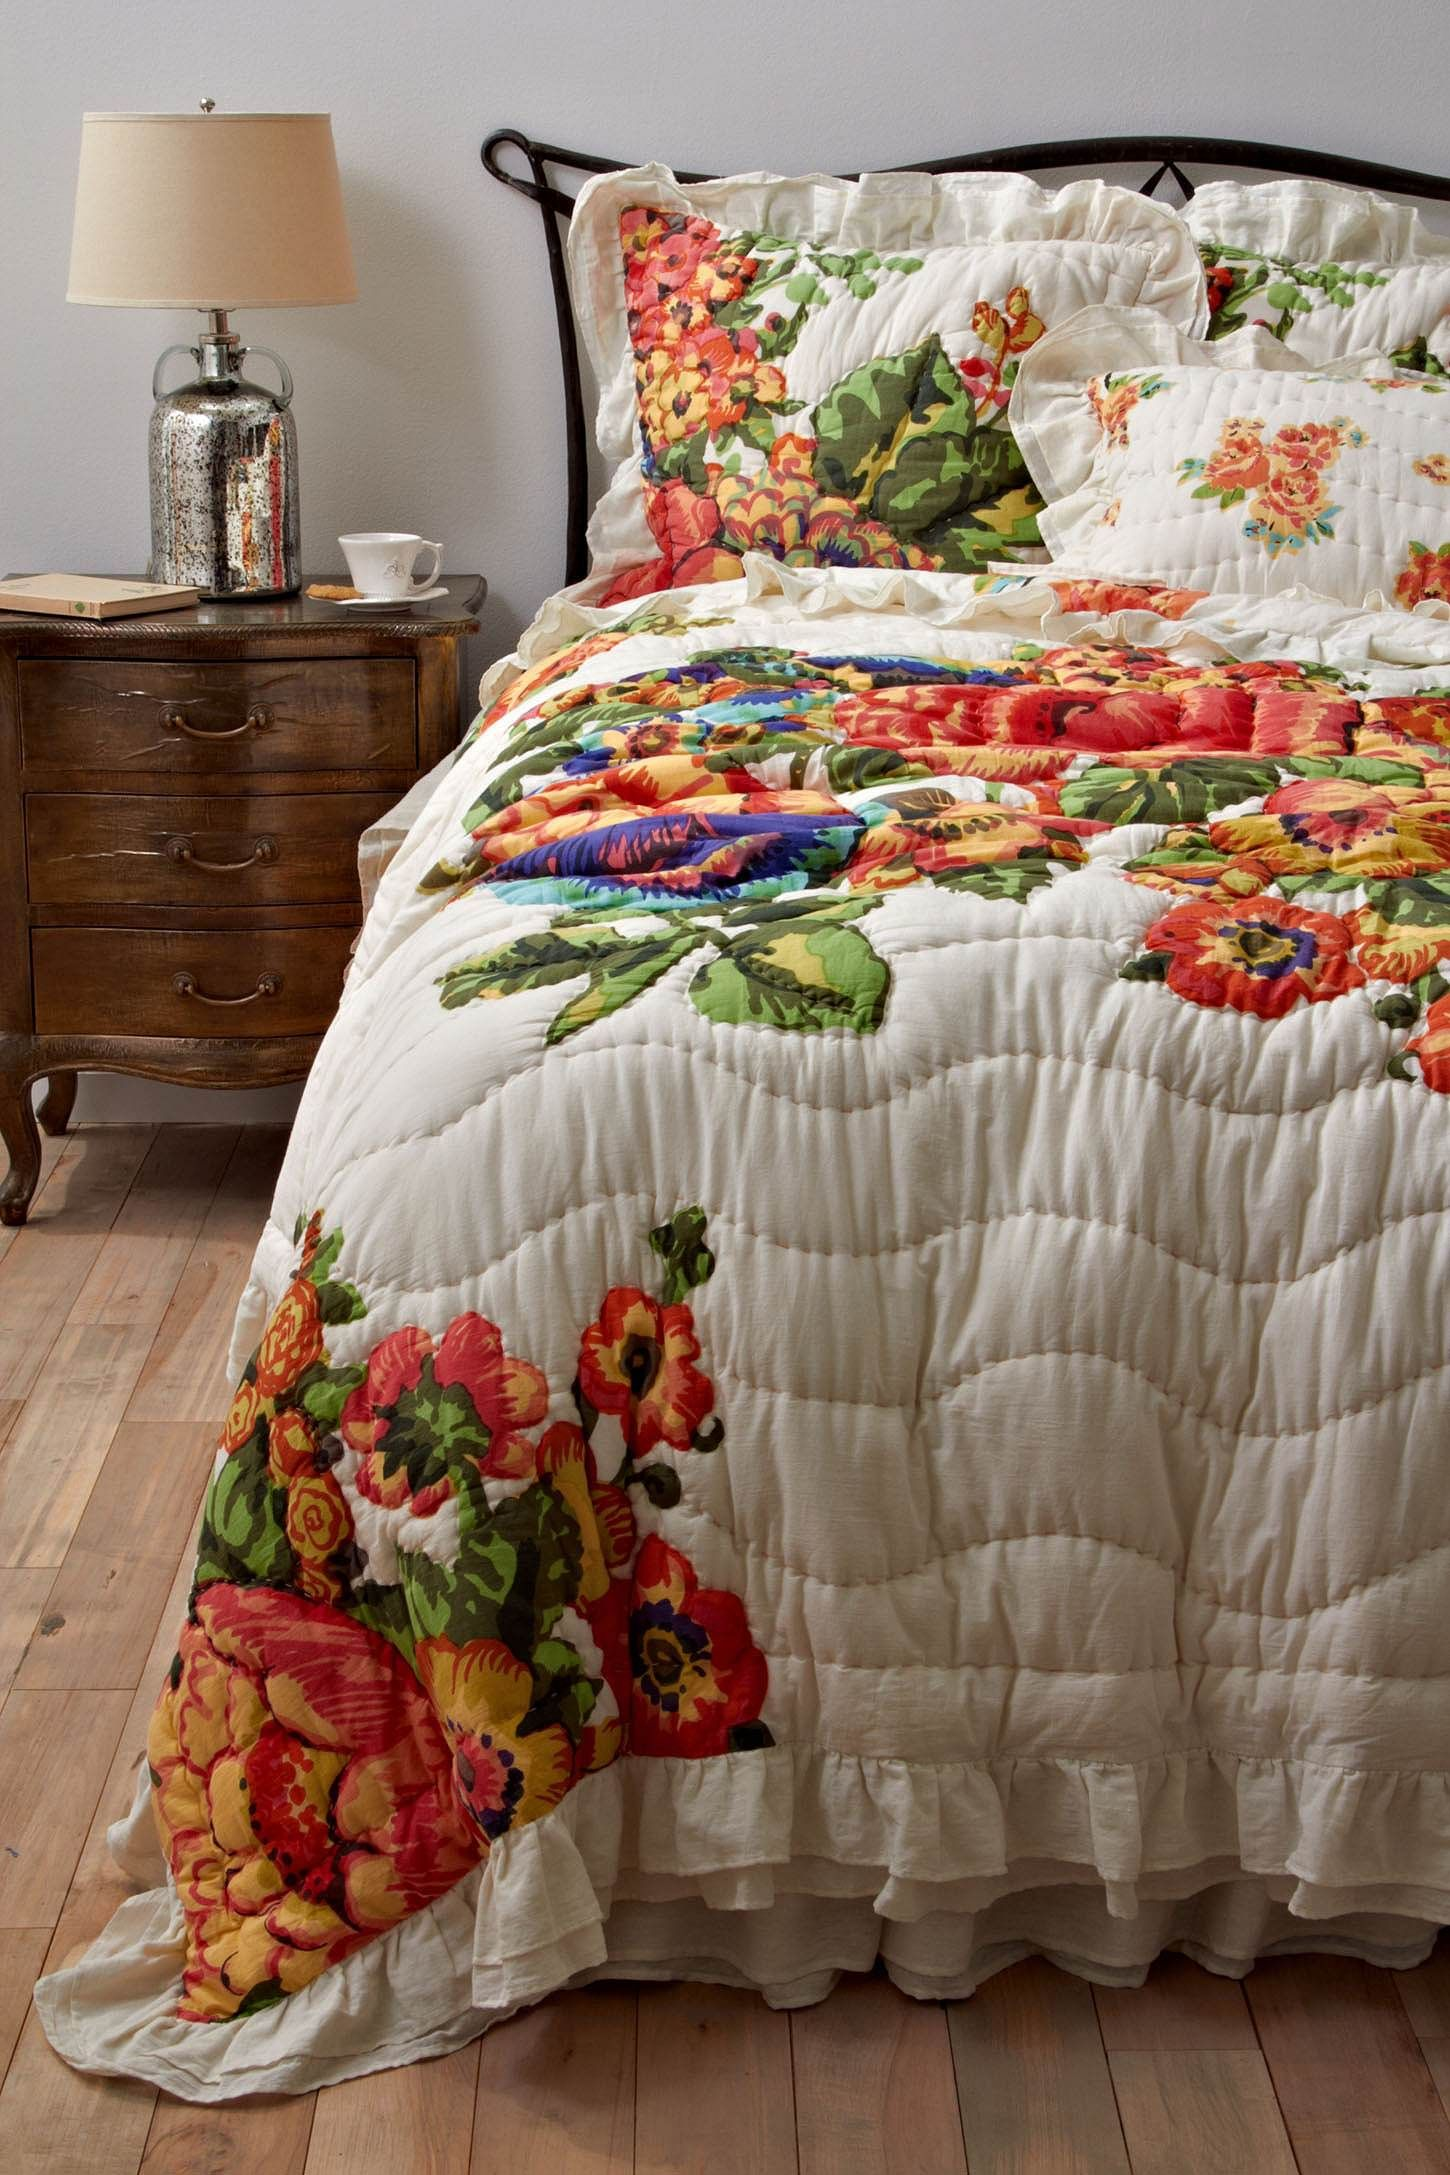 Anthropologie bedding - Latte Bowl Set Anthropologie Beddingfloral